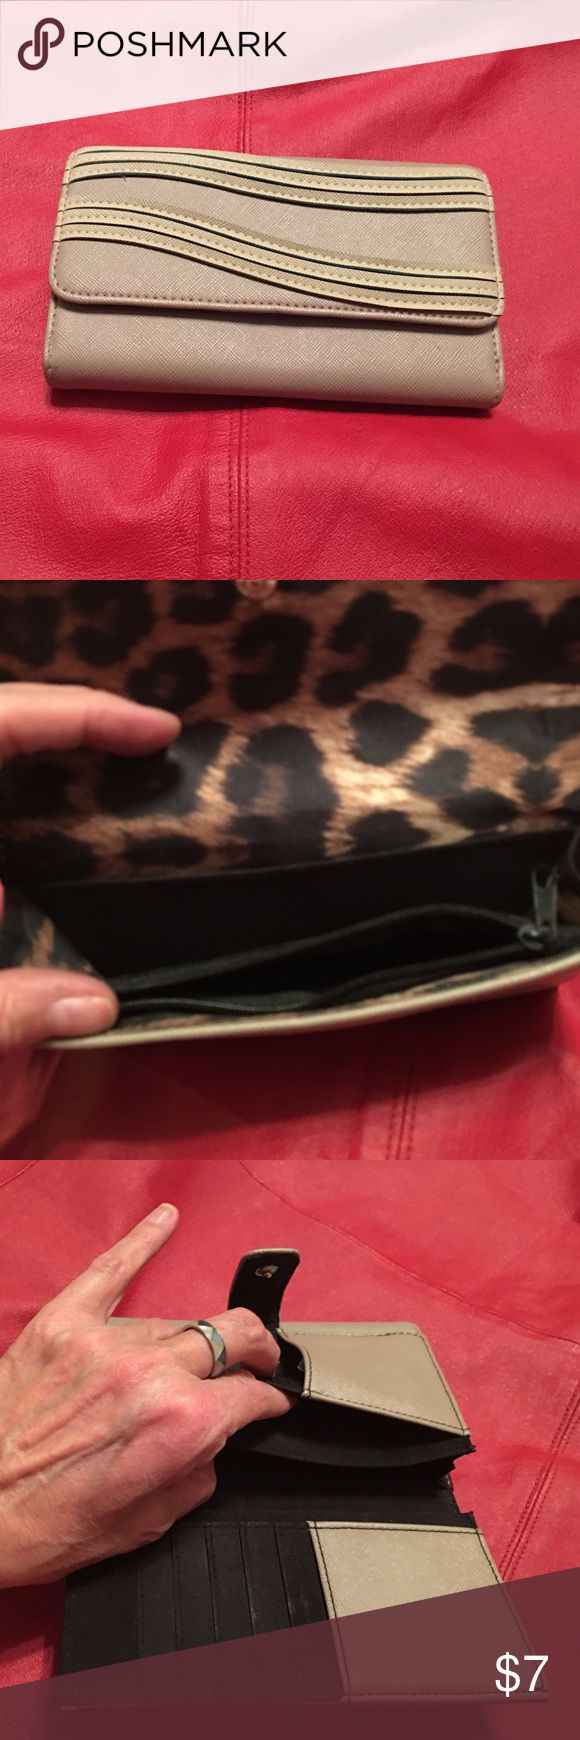 Jessica Simpson wallet Lightly used Jessica Simpson wallet Bags Wallets